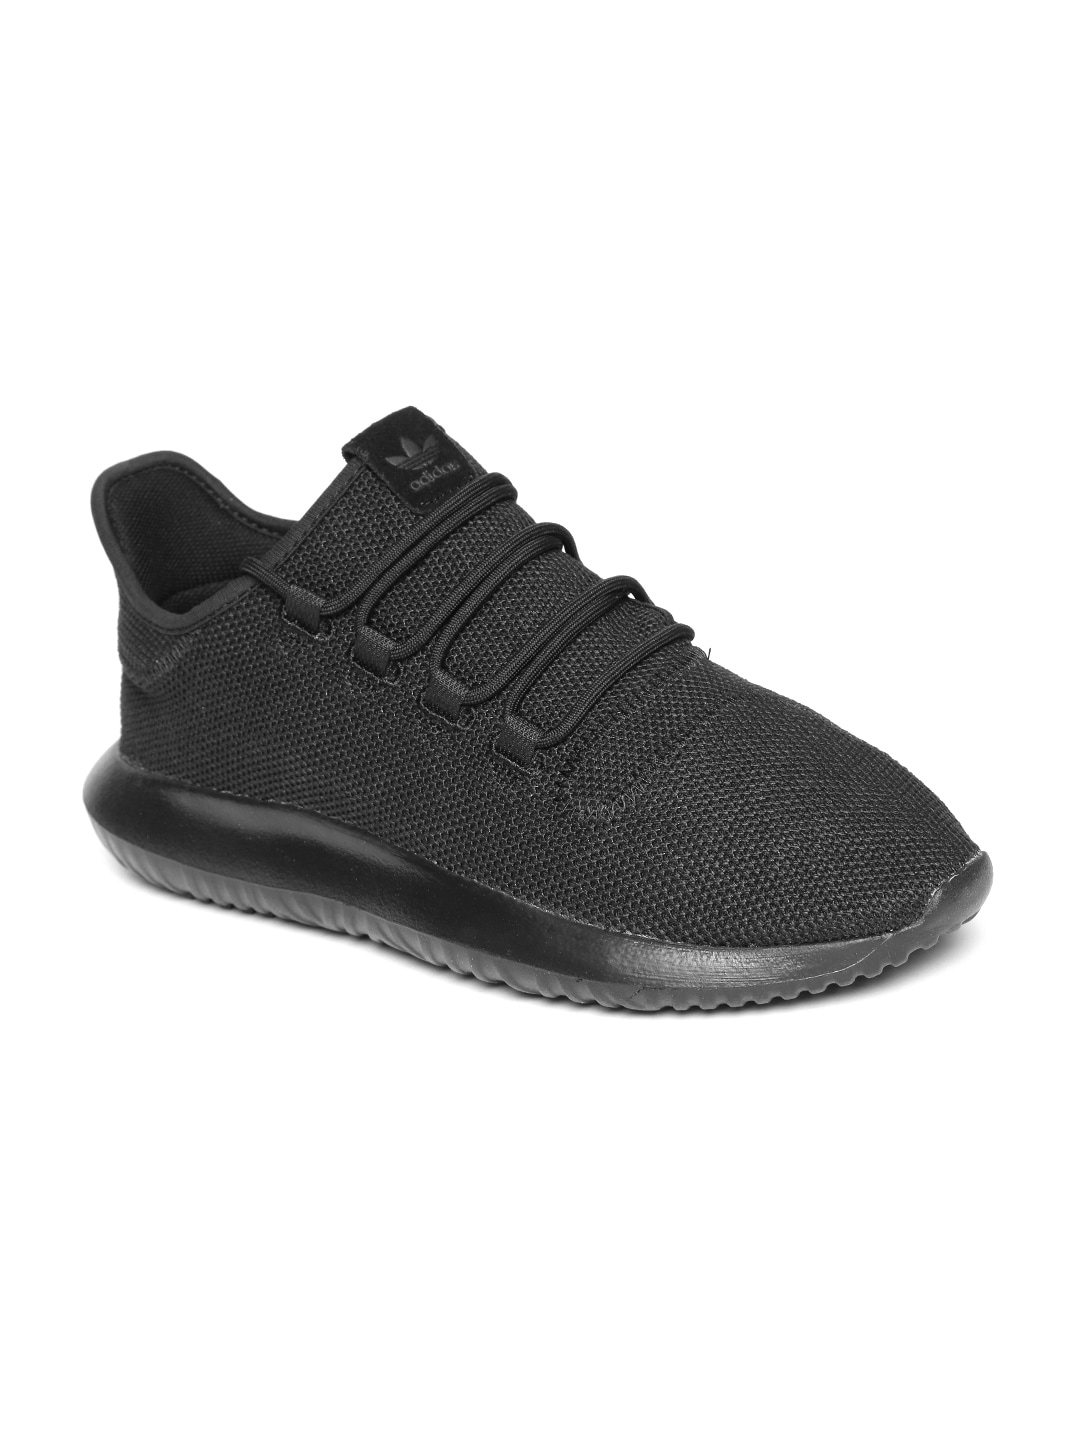 4d886dabccc Adidas Originals - Buy Adidas Originals Shoes and Clothing Online   Myntra